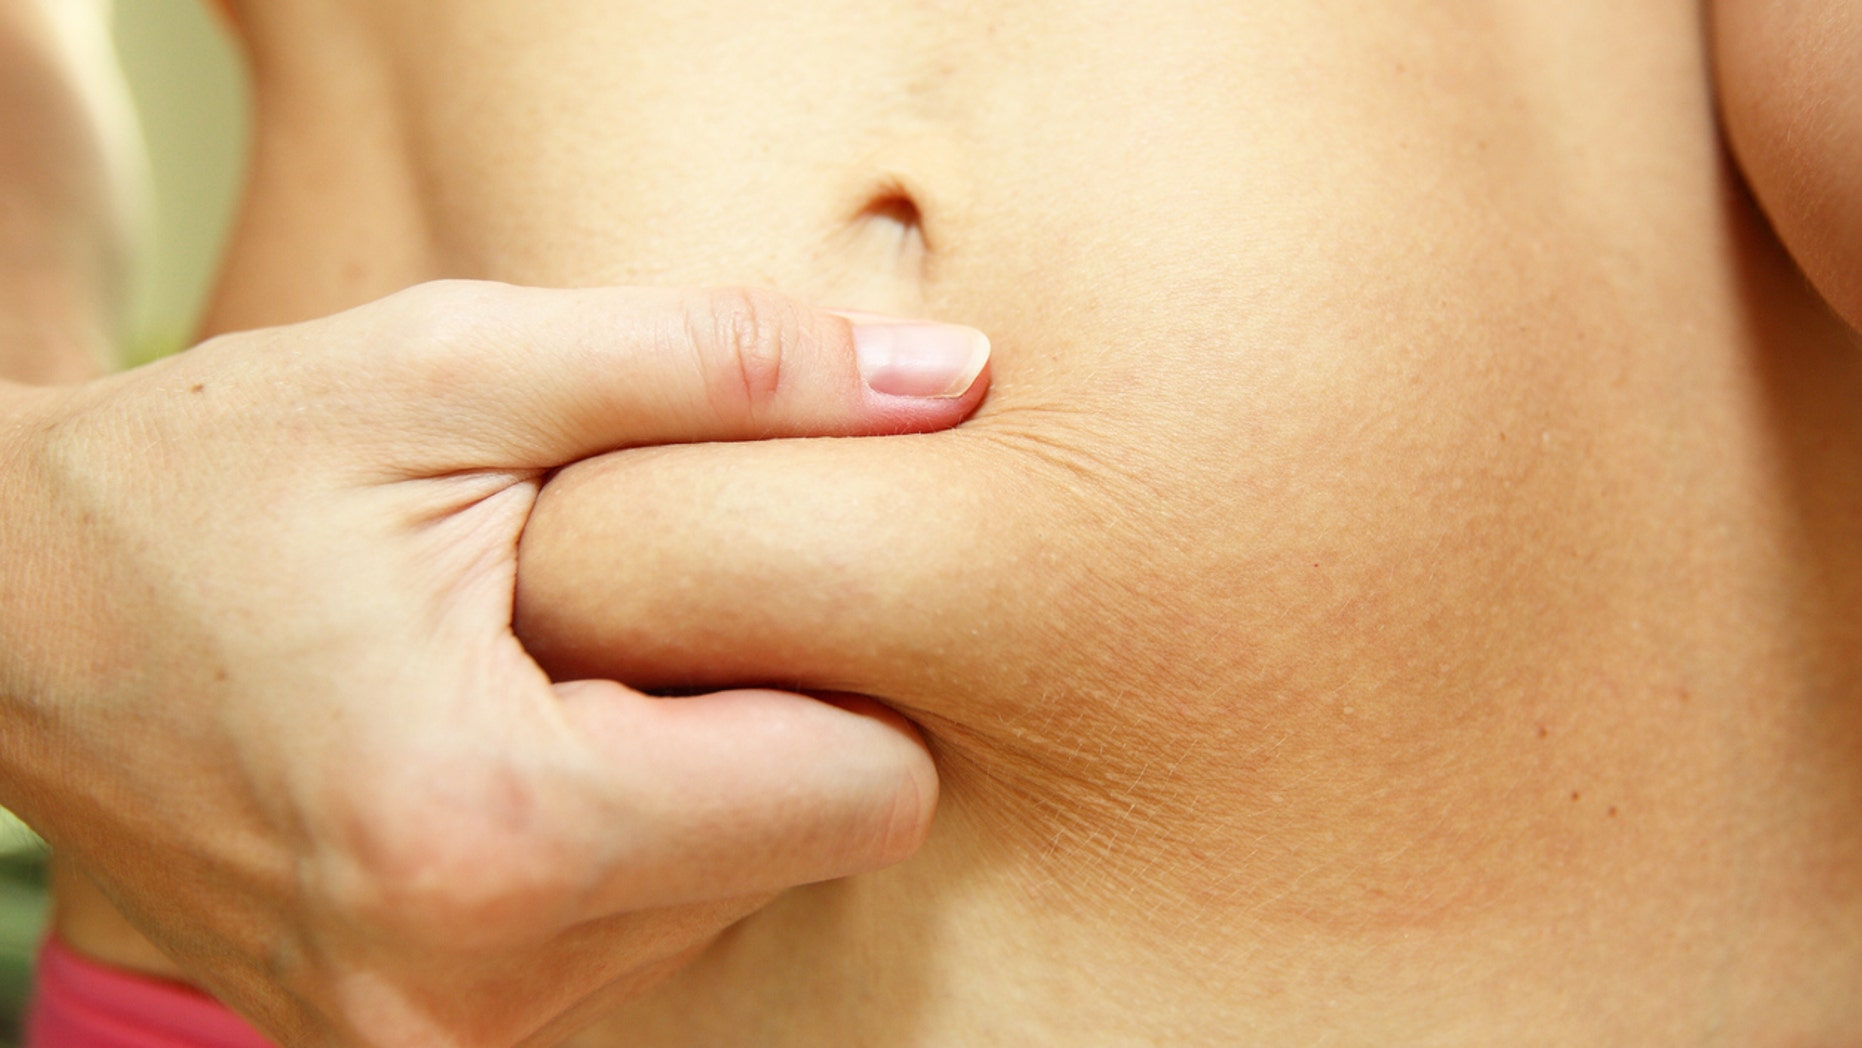 A close-up image of a slim young woman with a belly fat after giving